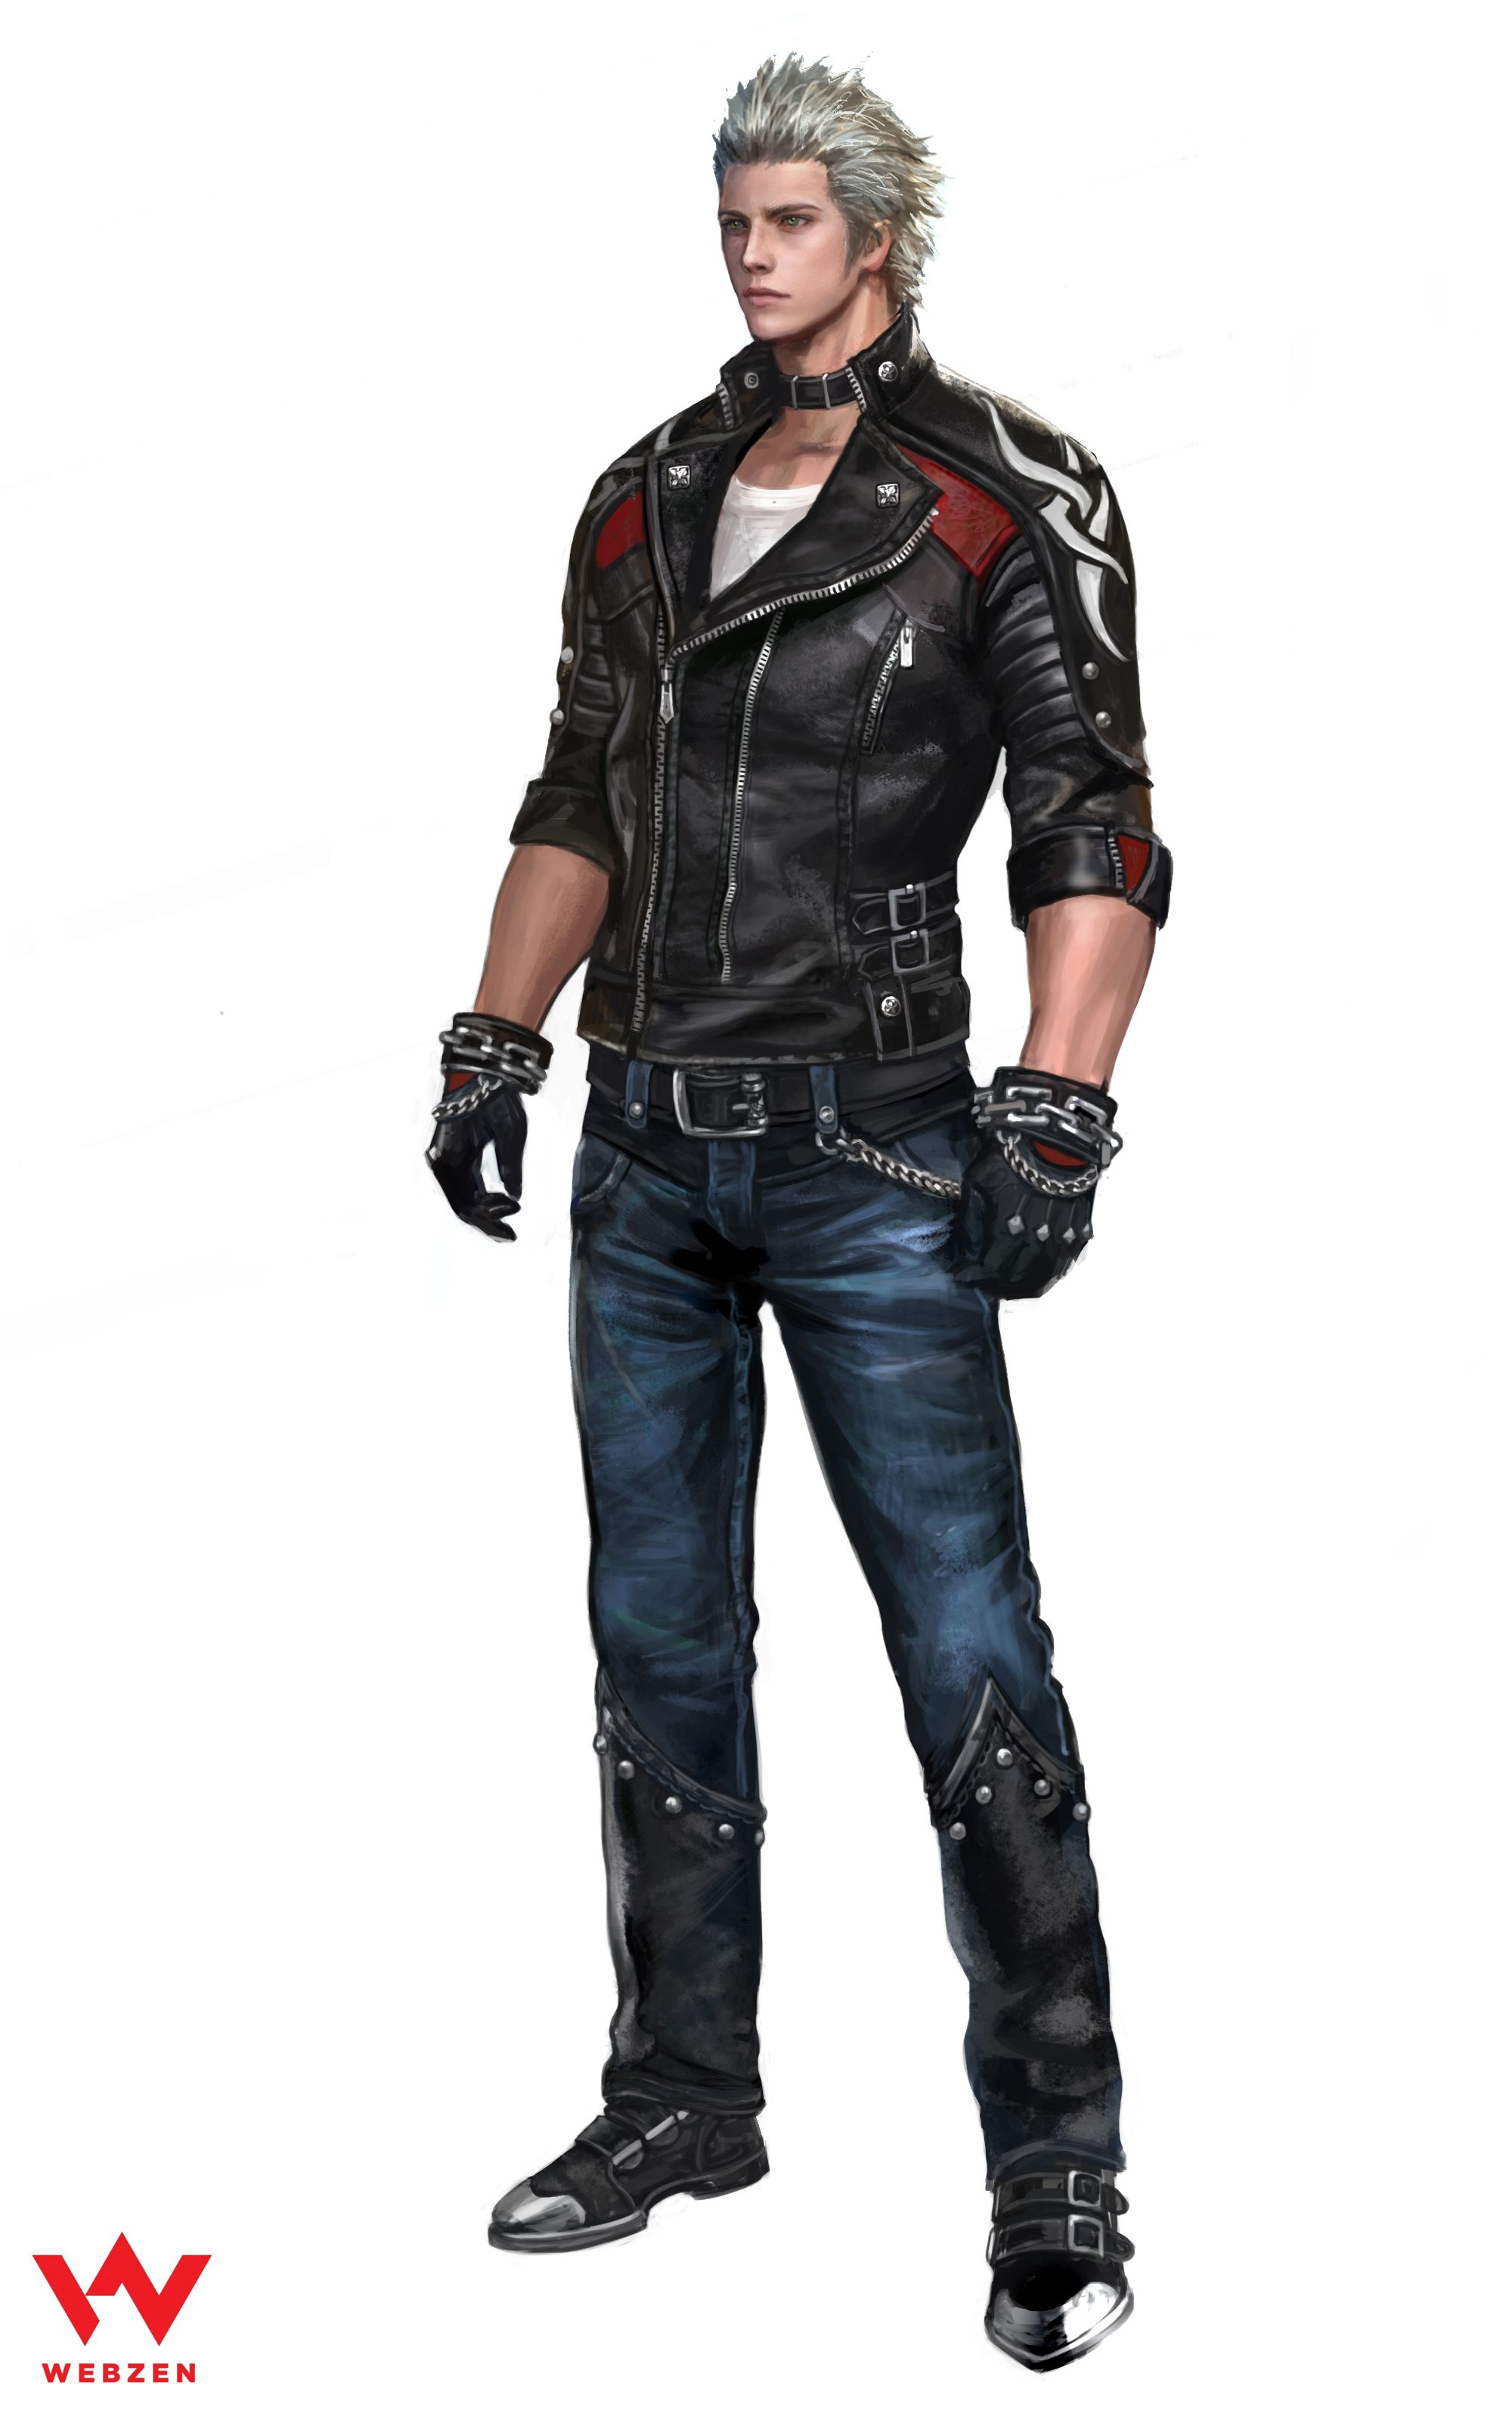 Leather Jacket Leather Jacket Jacket Drawing Designs To Draw [ 3200 x 2000 Pixel ]